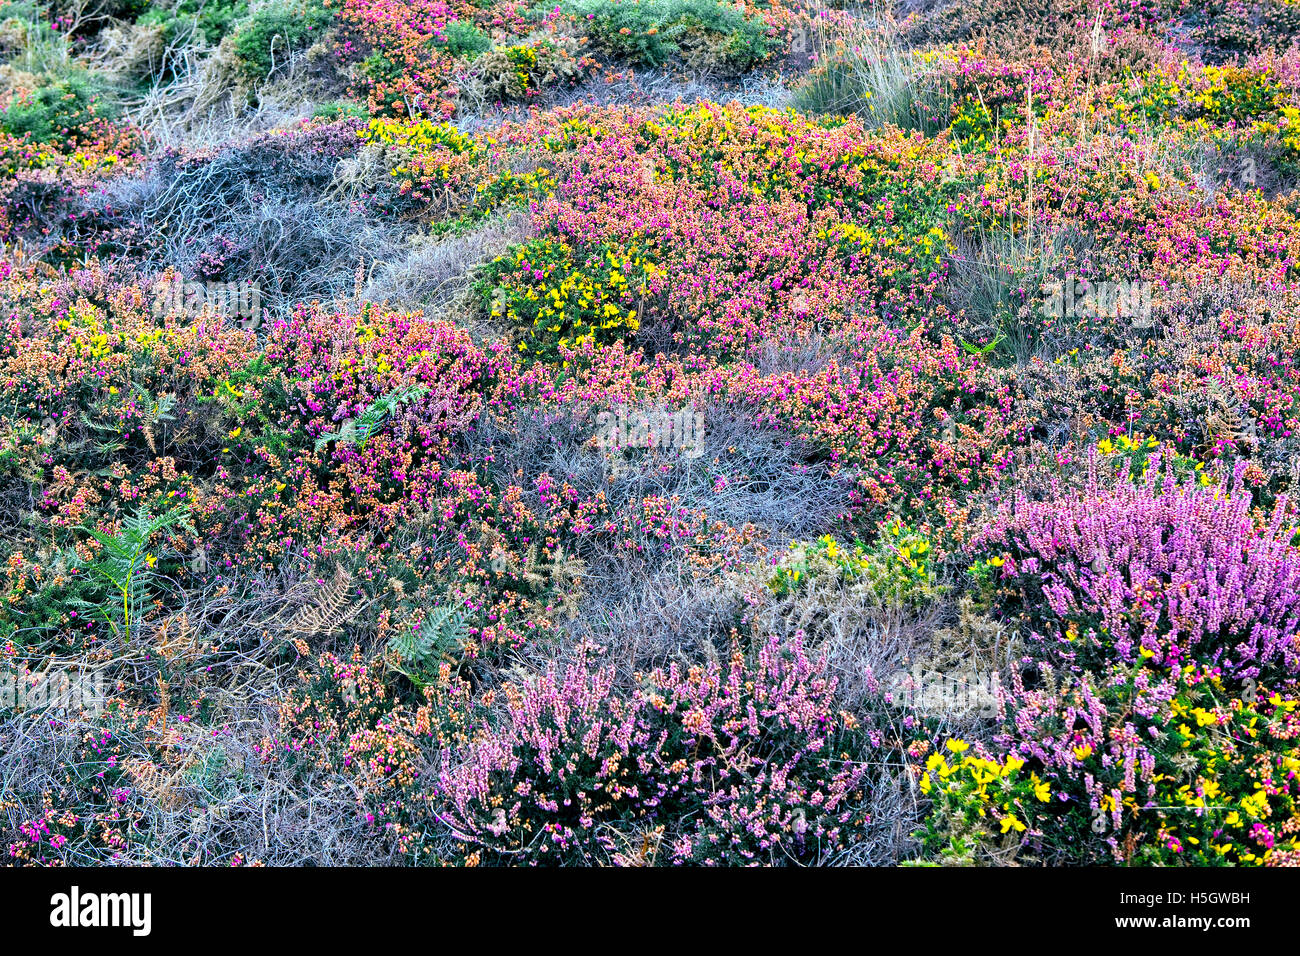 Blooming heath, furze and fern in Brittany, France - Stock Image